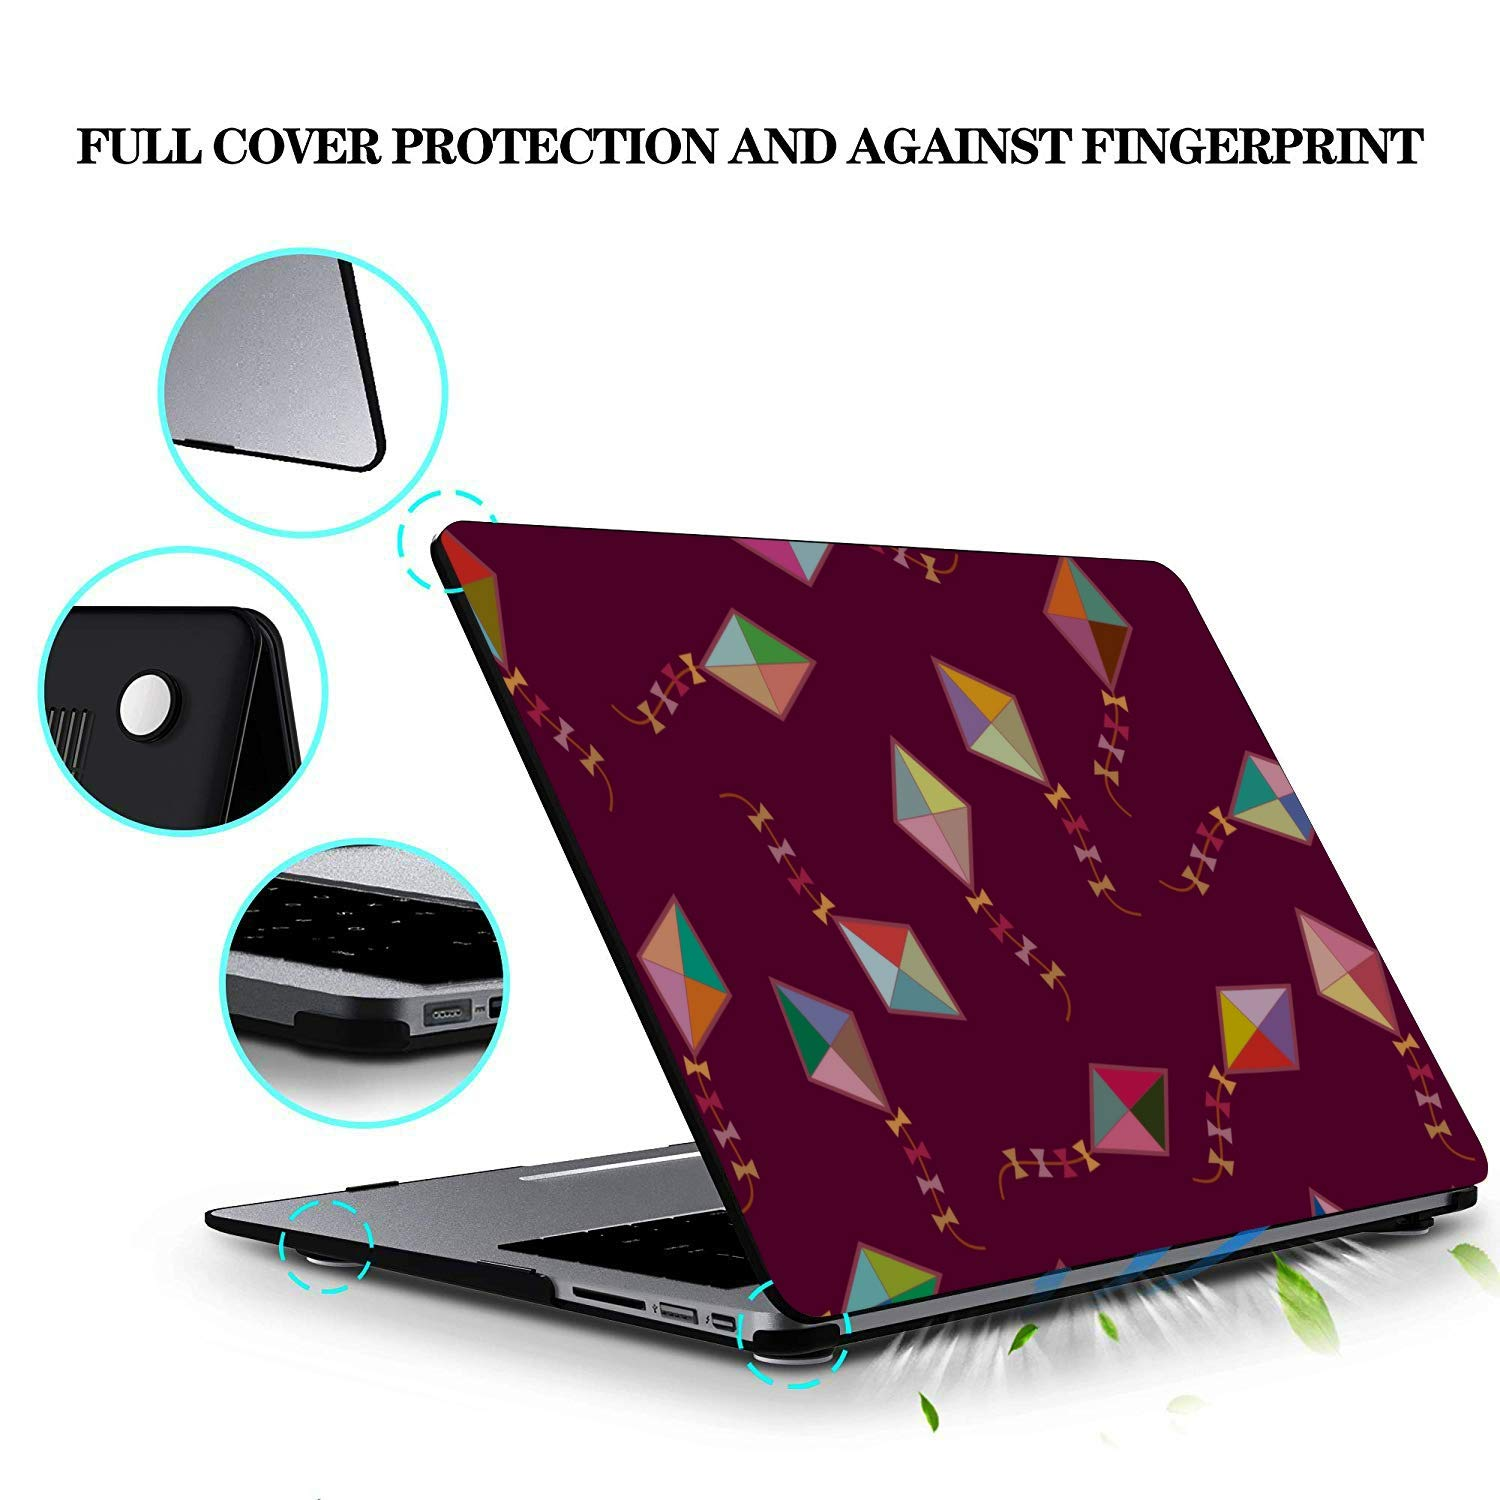 Mac Case Spring Children Play Game Toy Kite Plastic Hard Shell Compatible Mac Air 11 Pro 13 15 MacBook Air Accessories Protection for MacBook 2016-2019 Version